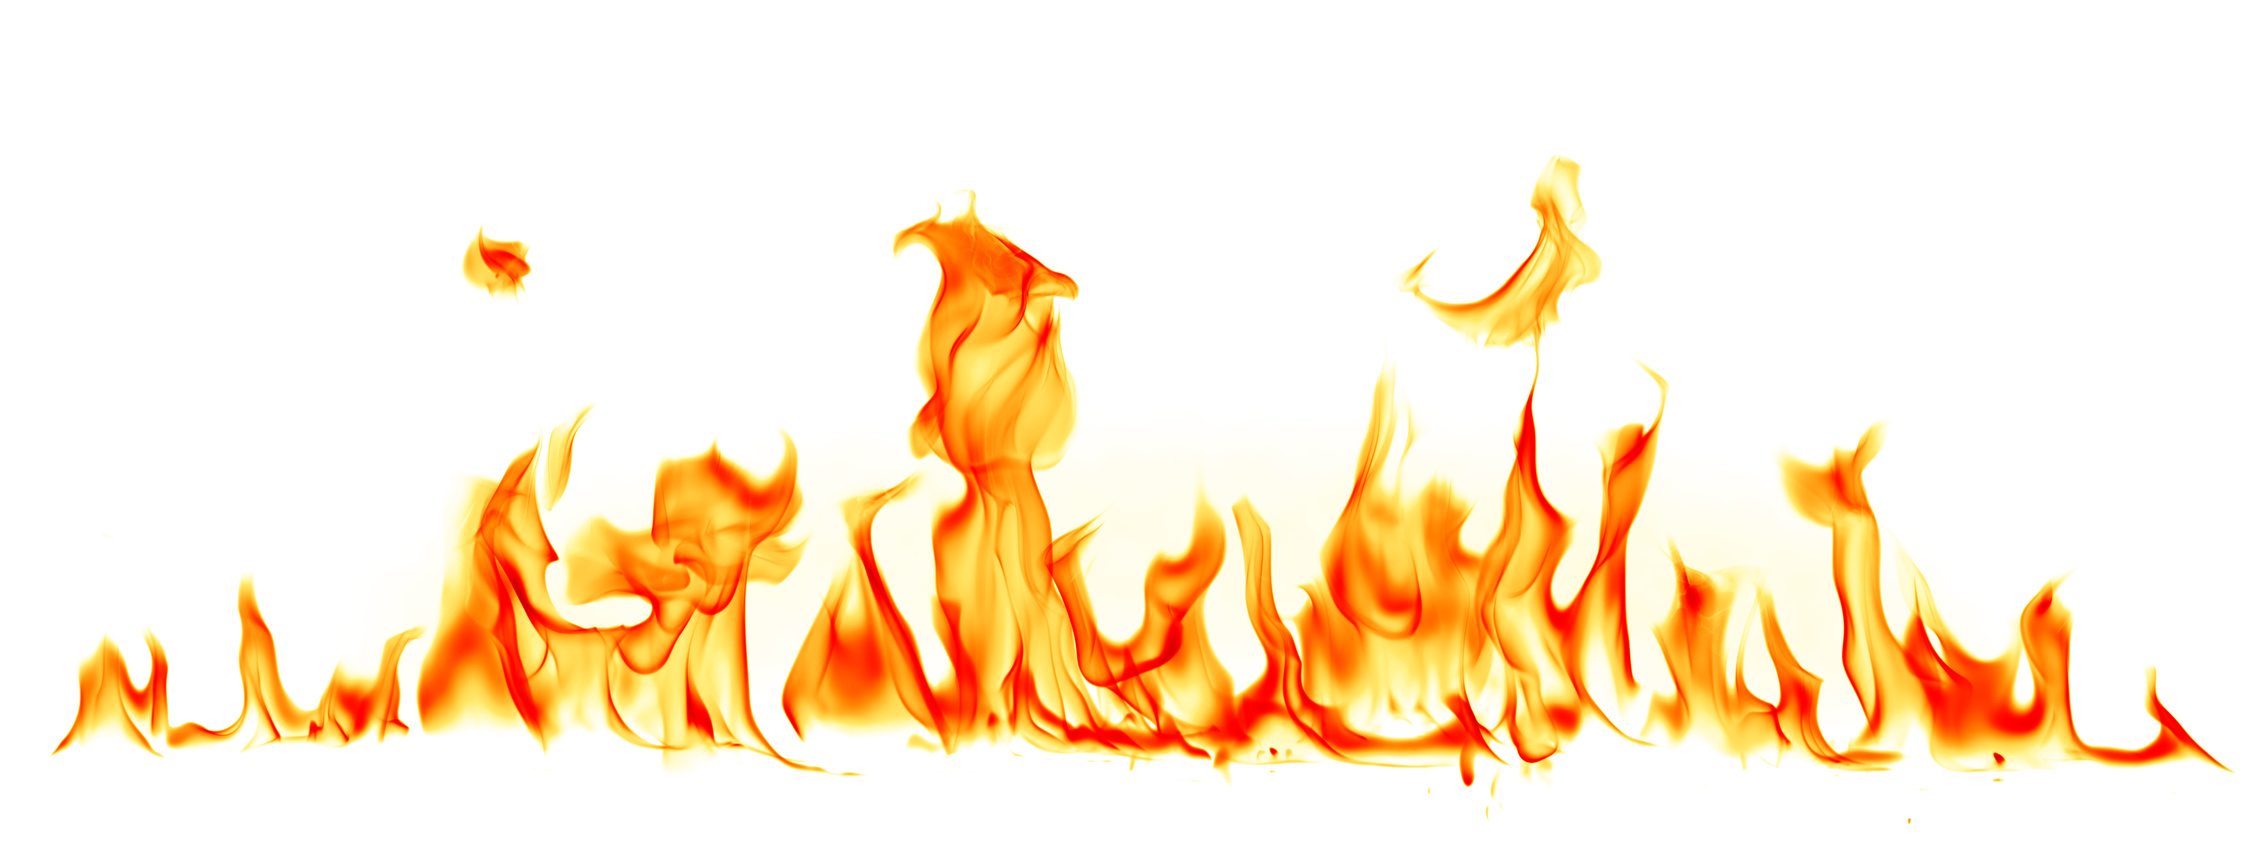 Copy of Fire flames isolated on white background